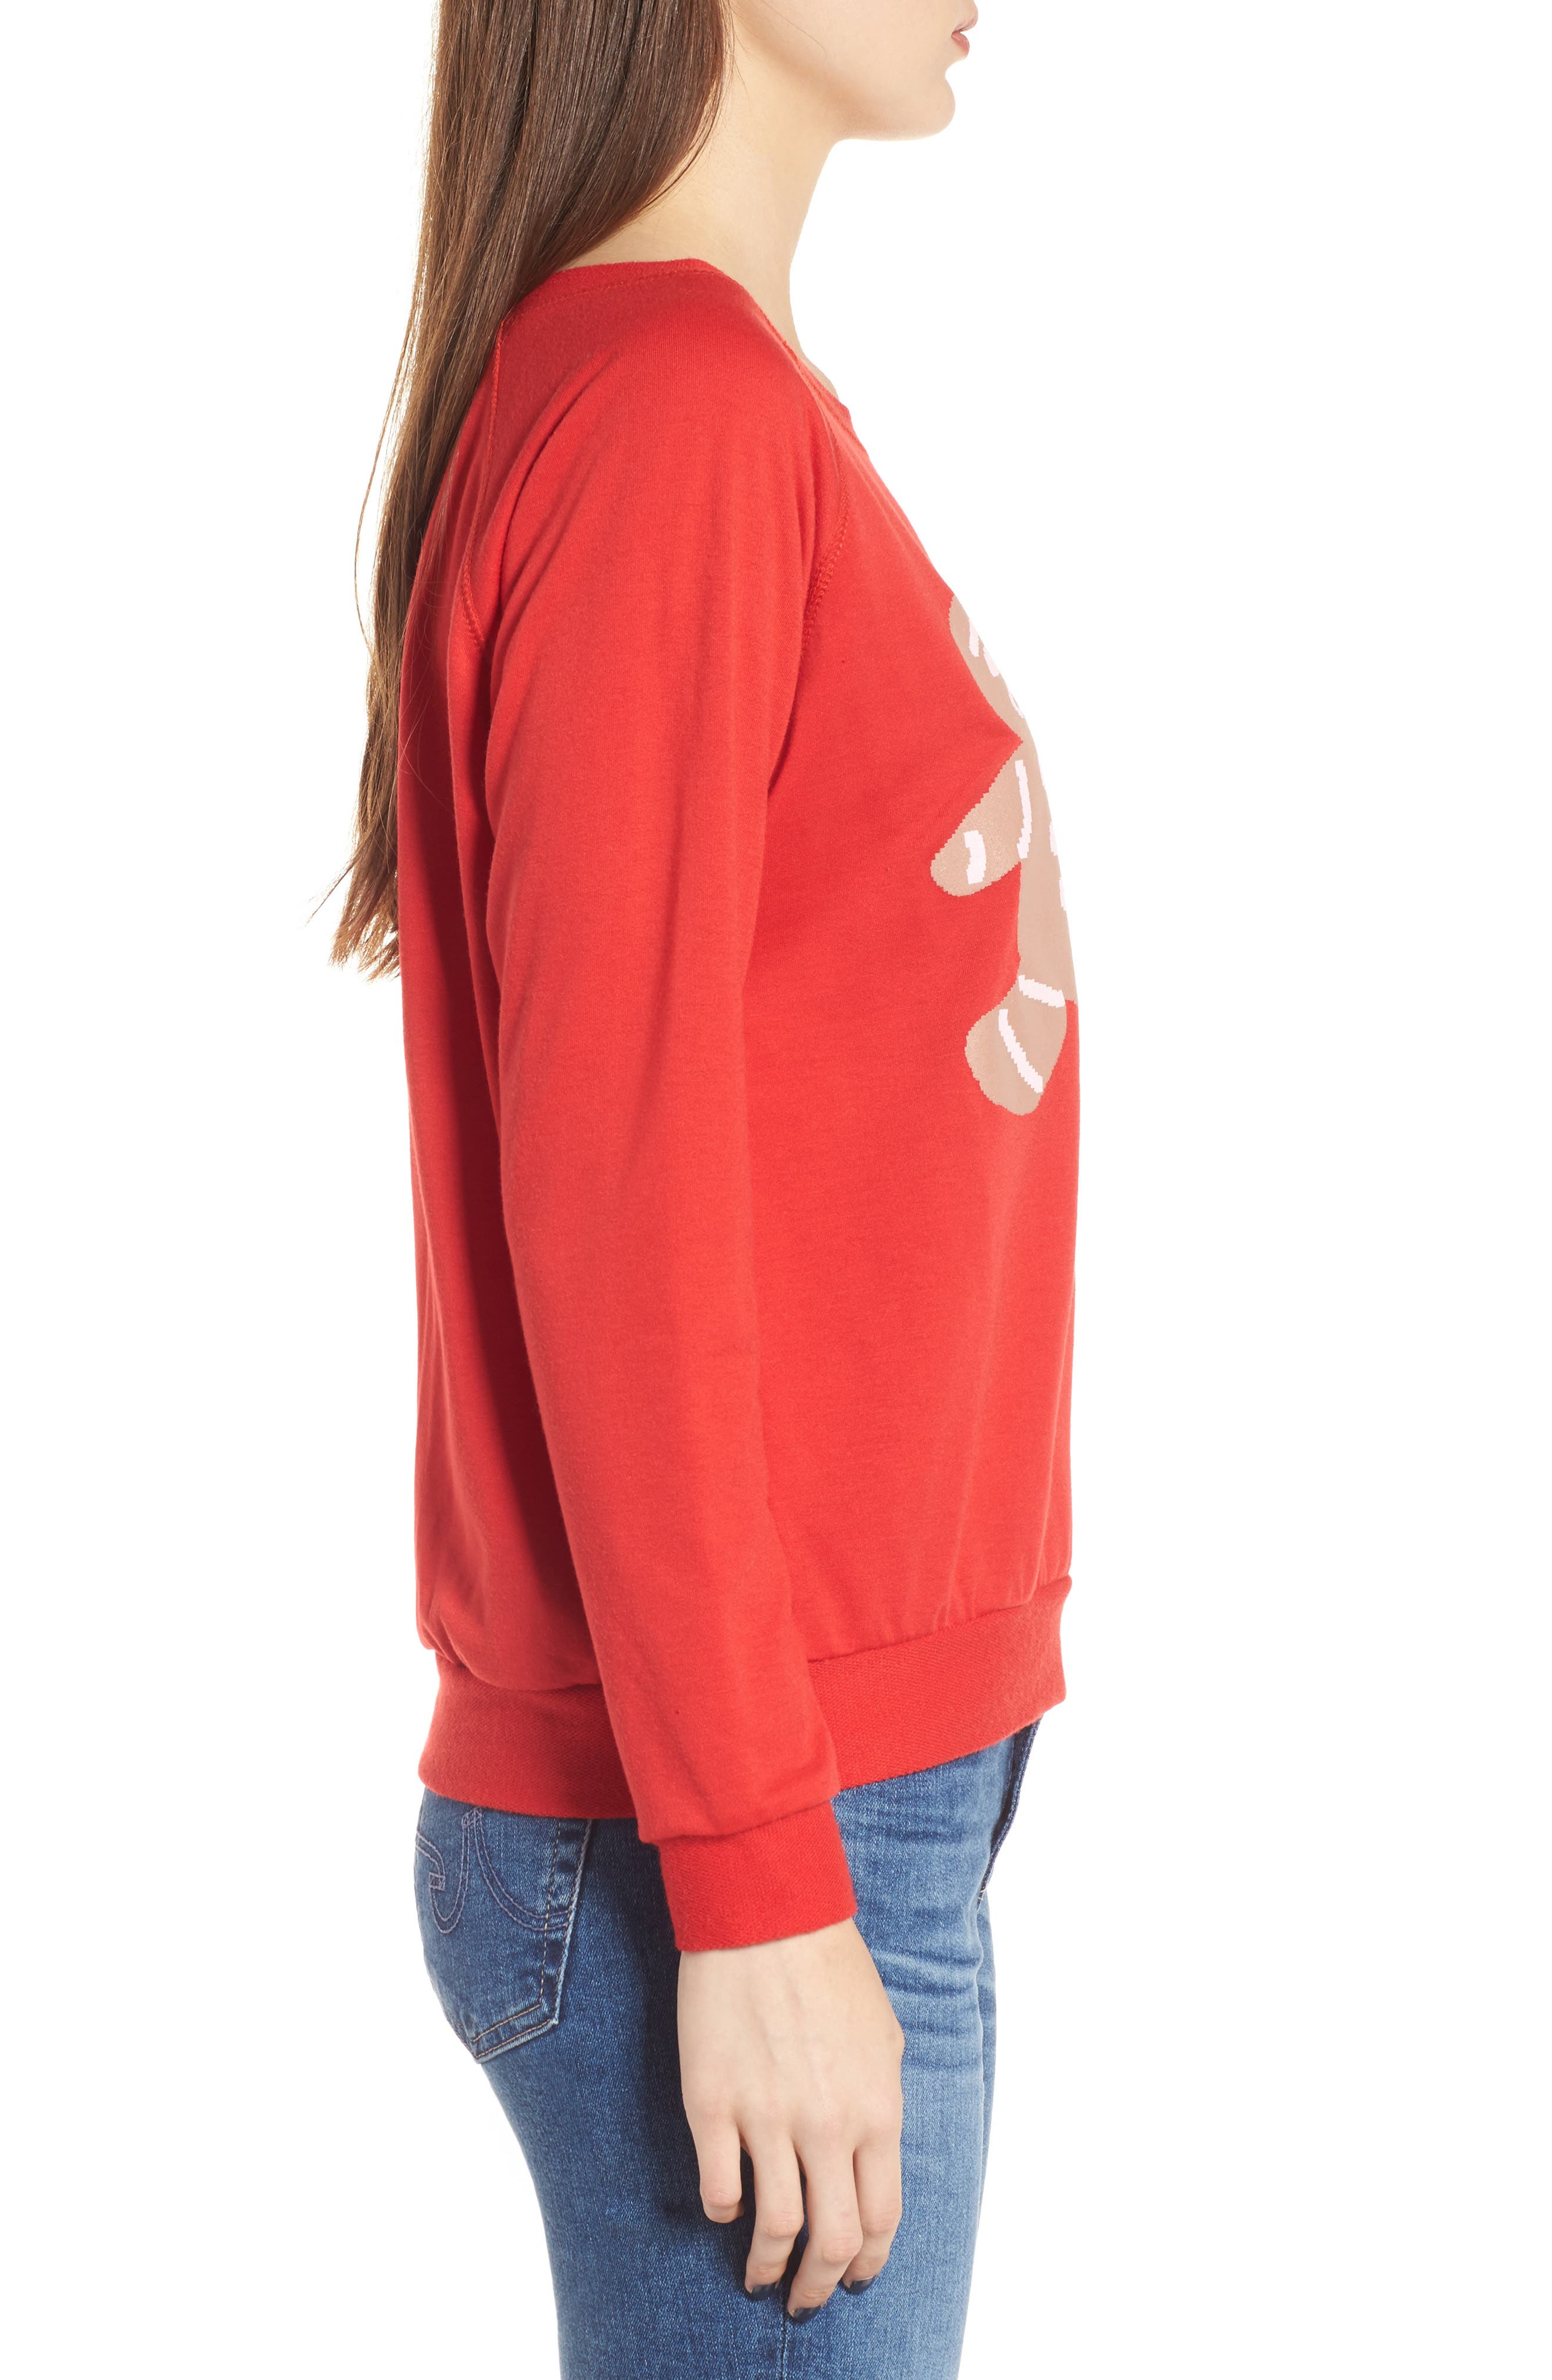 Oh Snap Sweatshirt,                             Alternate thumbnail 3, color,                             Red